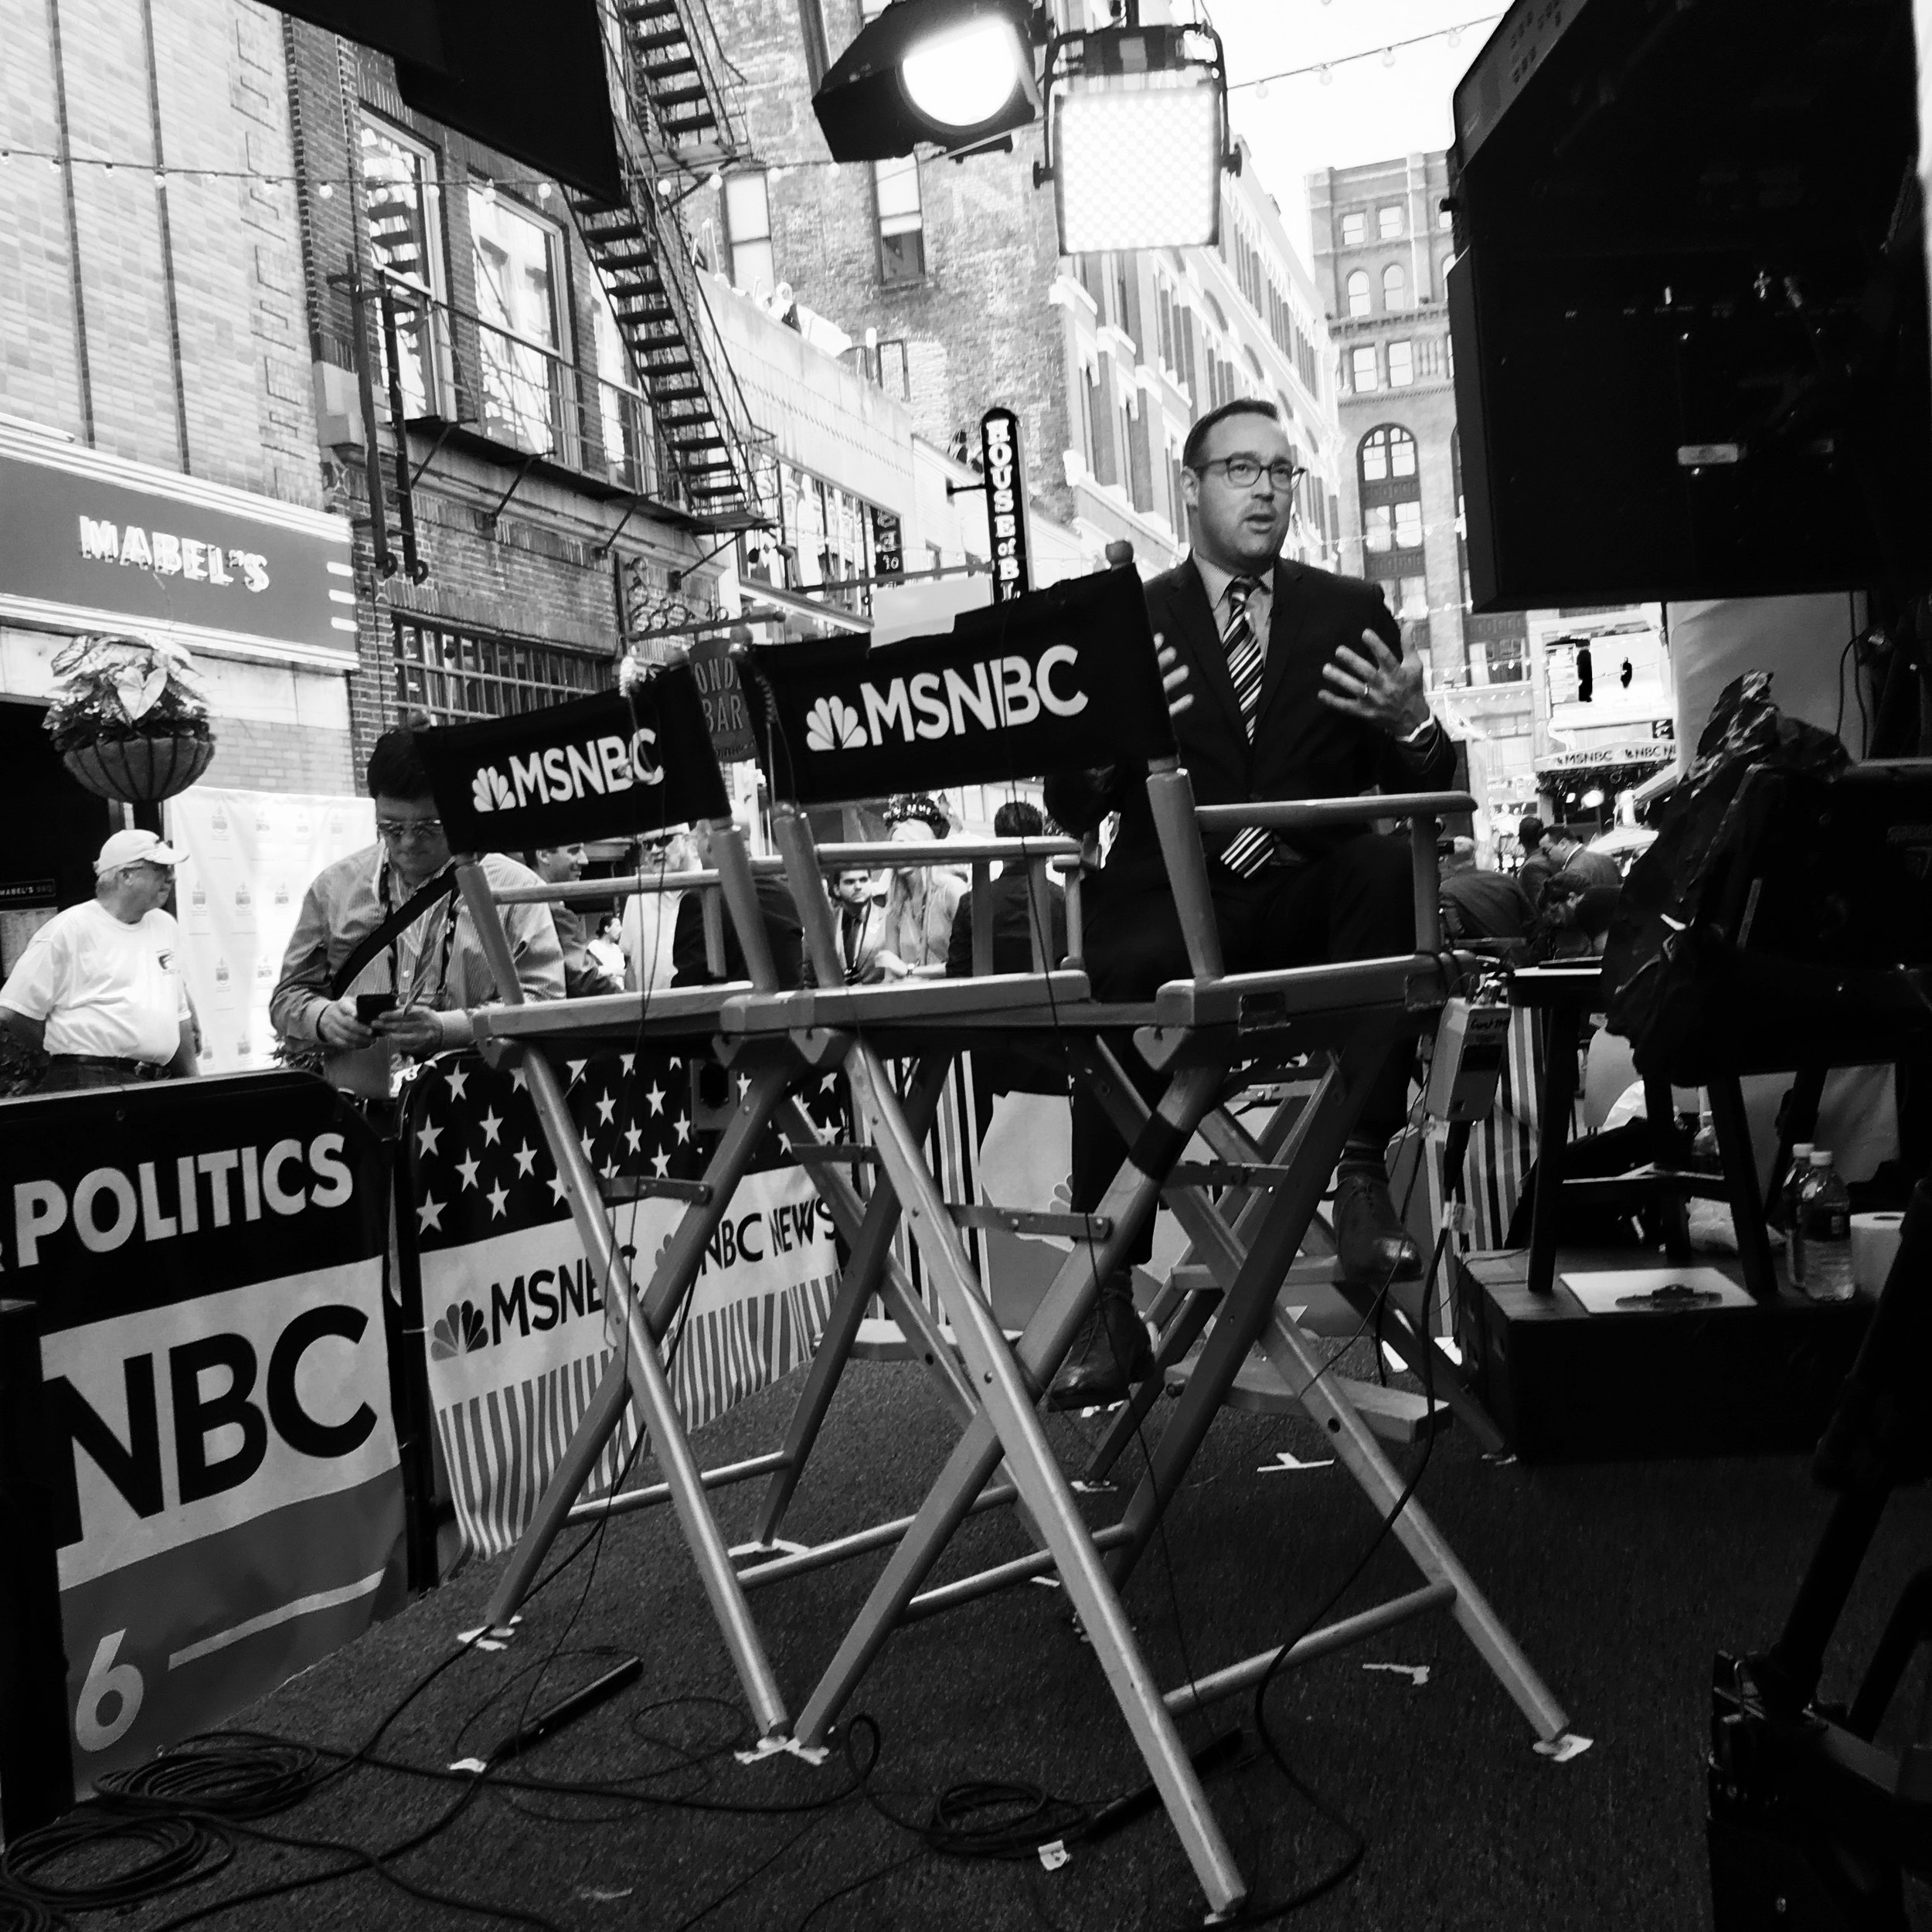 """ Cillizza, Say It Loud And There's Music Playing  - Cleveland, 2016"" Photo © by Tony Puryear, 2016 all rights reserved. Photo of MSNBC contributor Chris Cillizza filing a story."